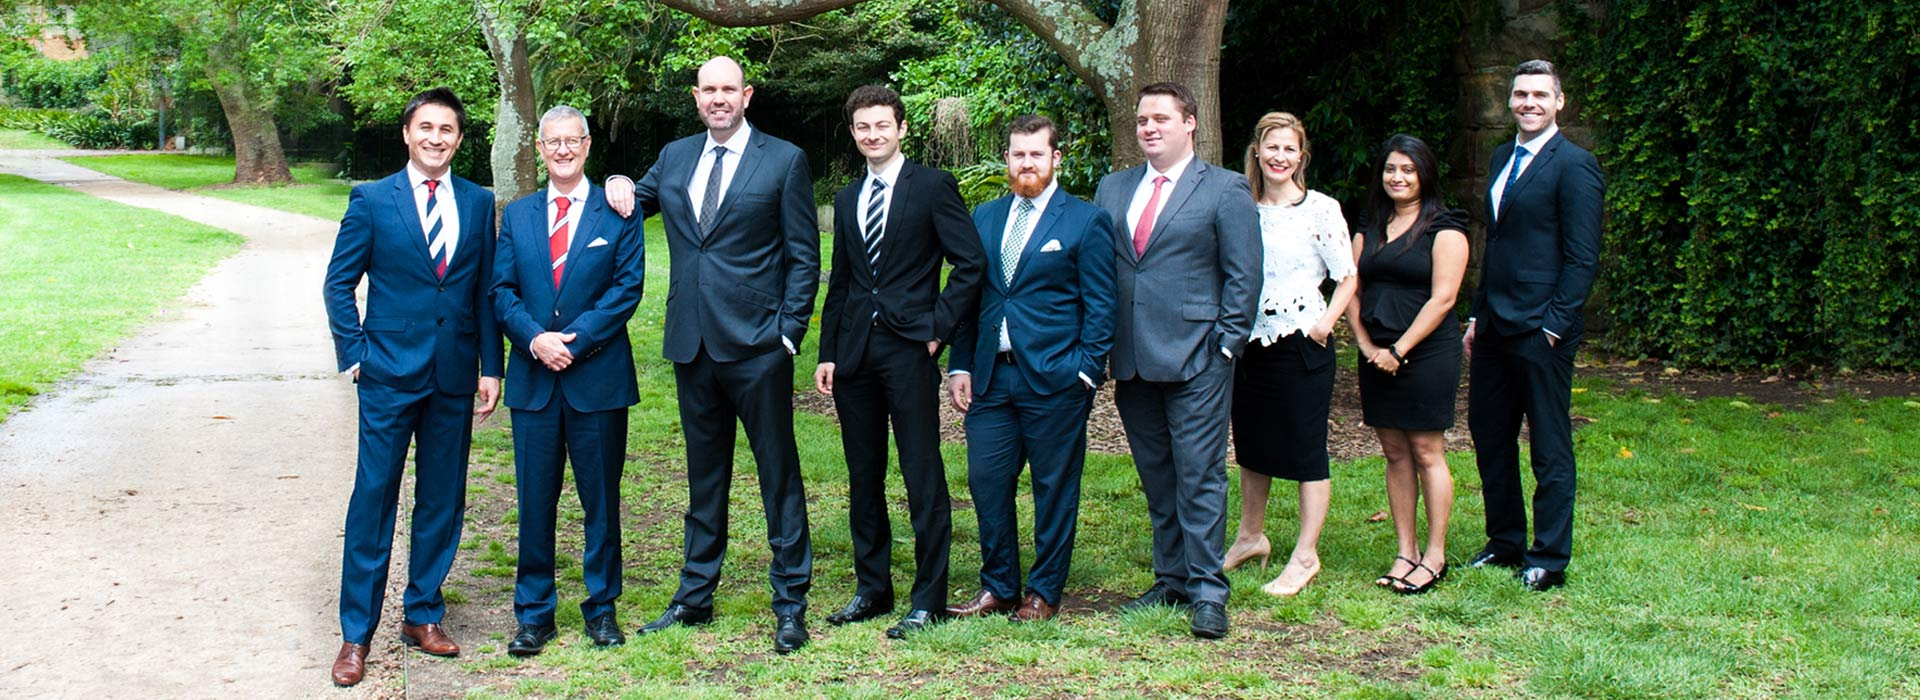 Sydney Financial Planning - Our Financial Planning Team